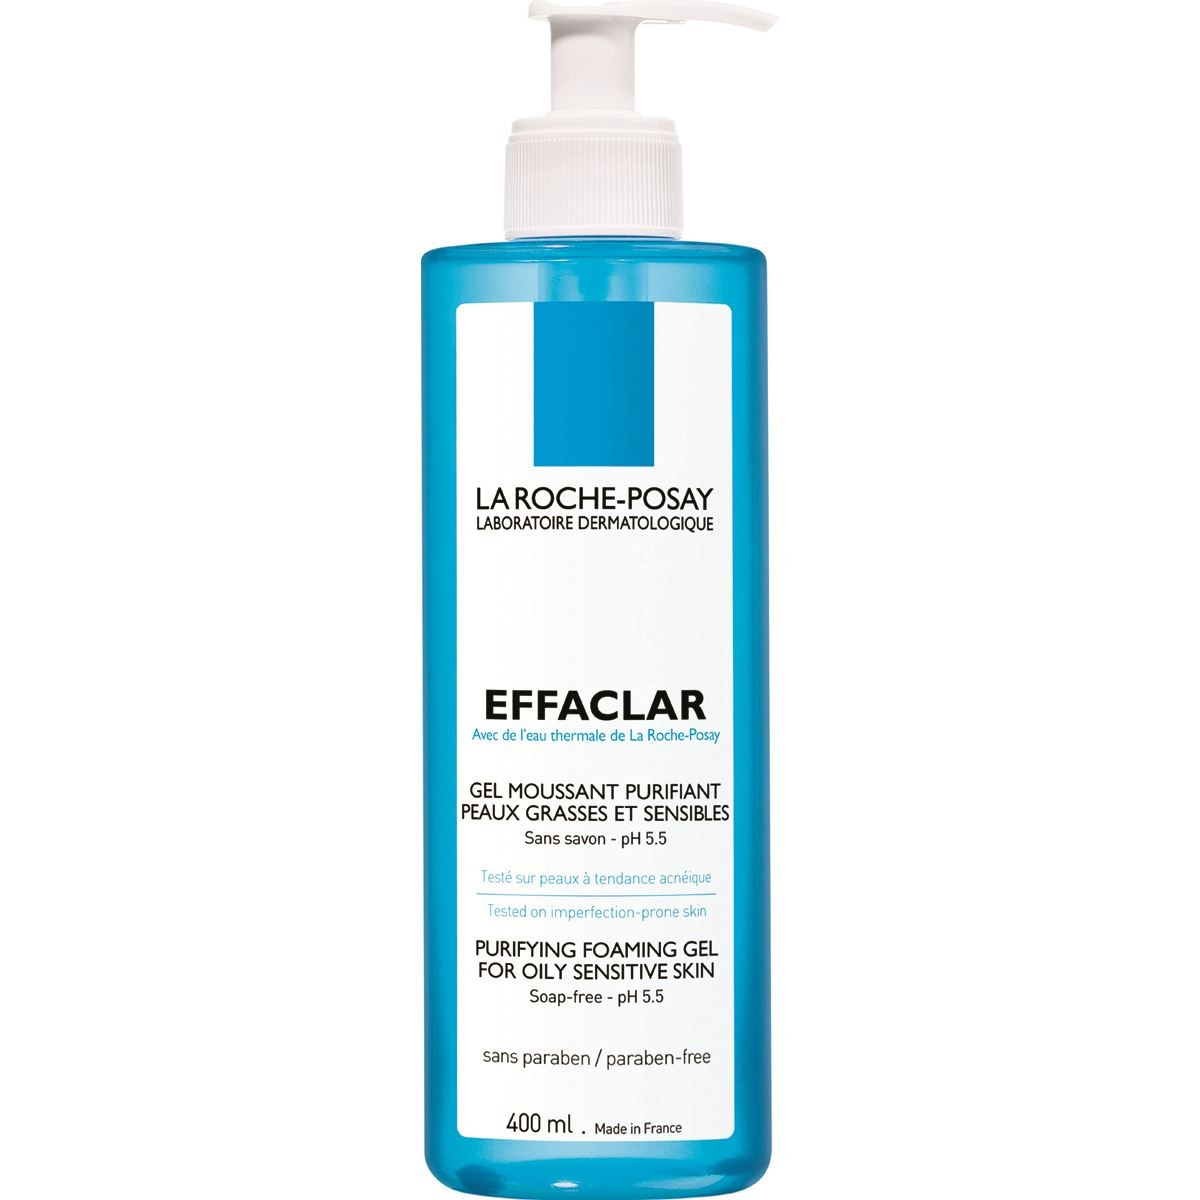 La roche-posay effaclar gel  mousse t400ml  - Sanborns